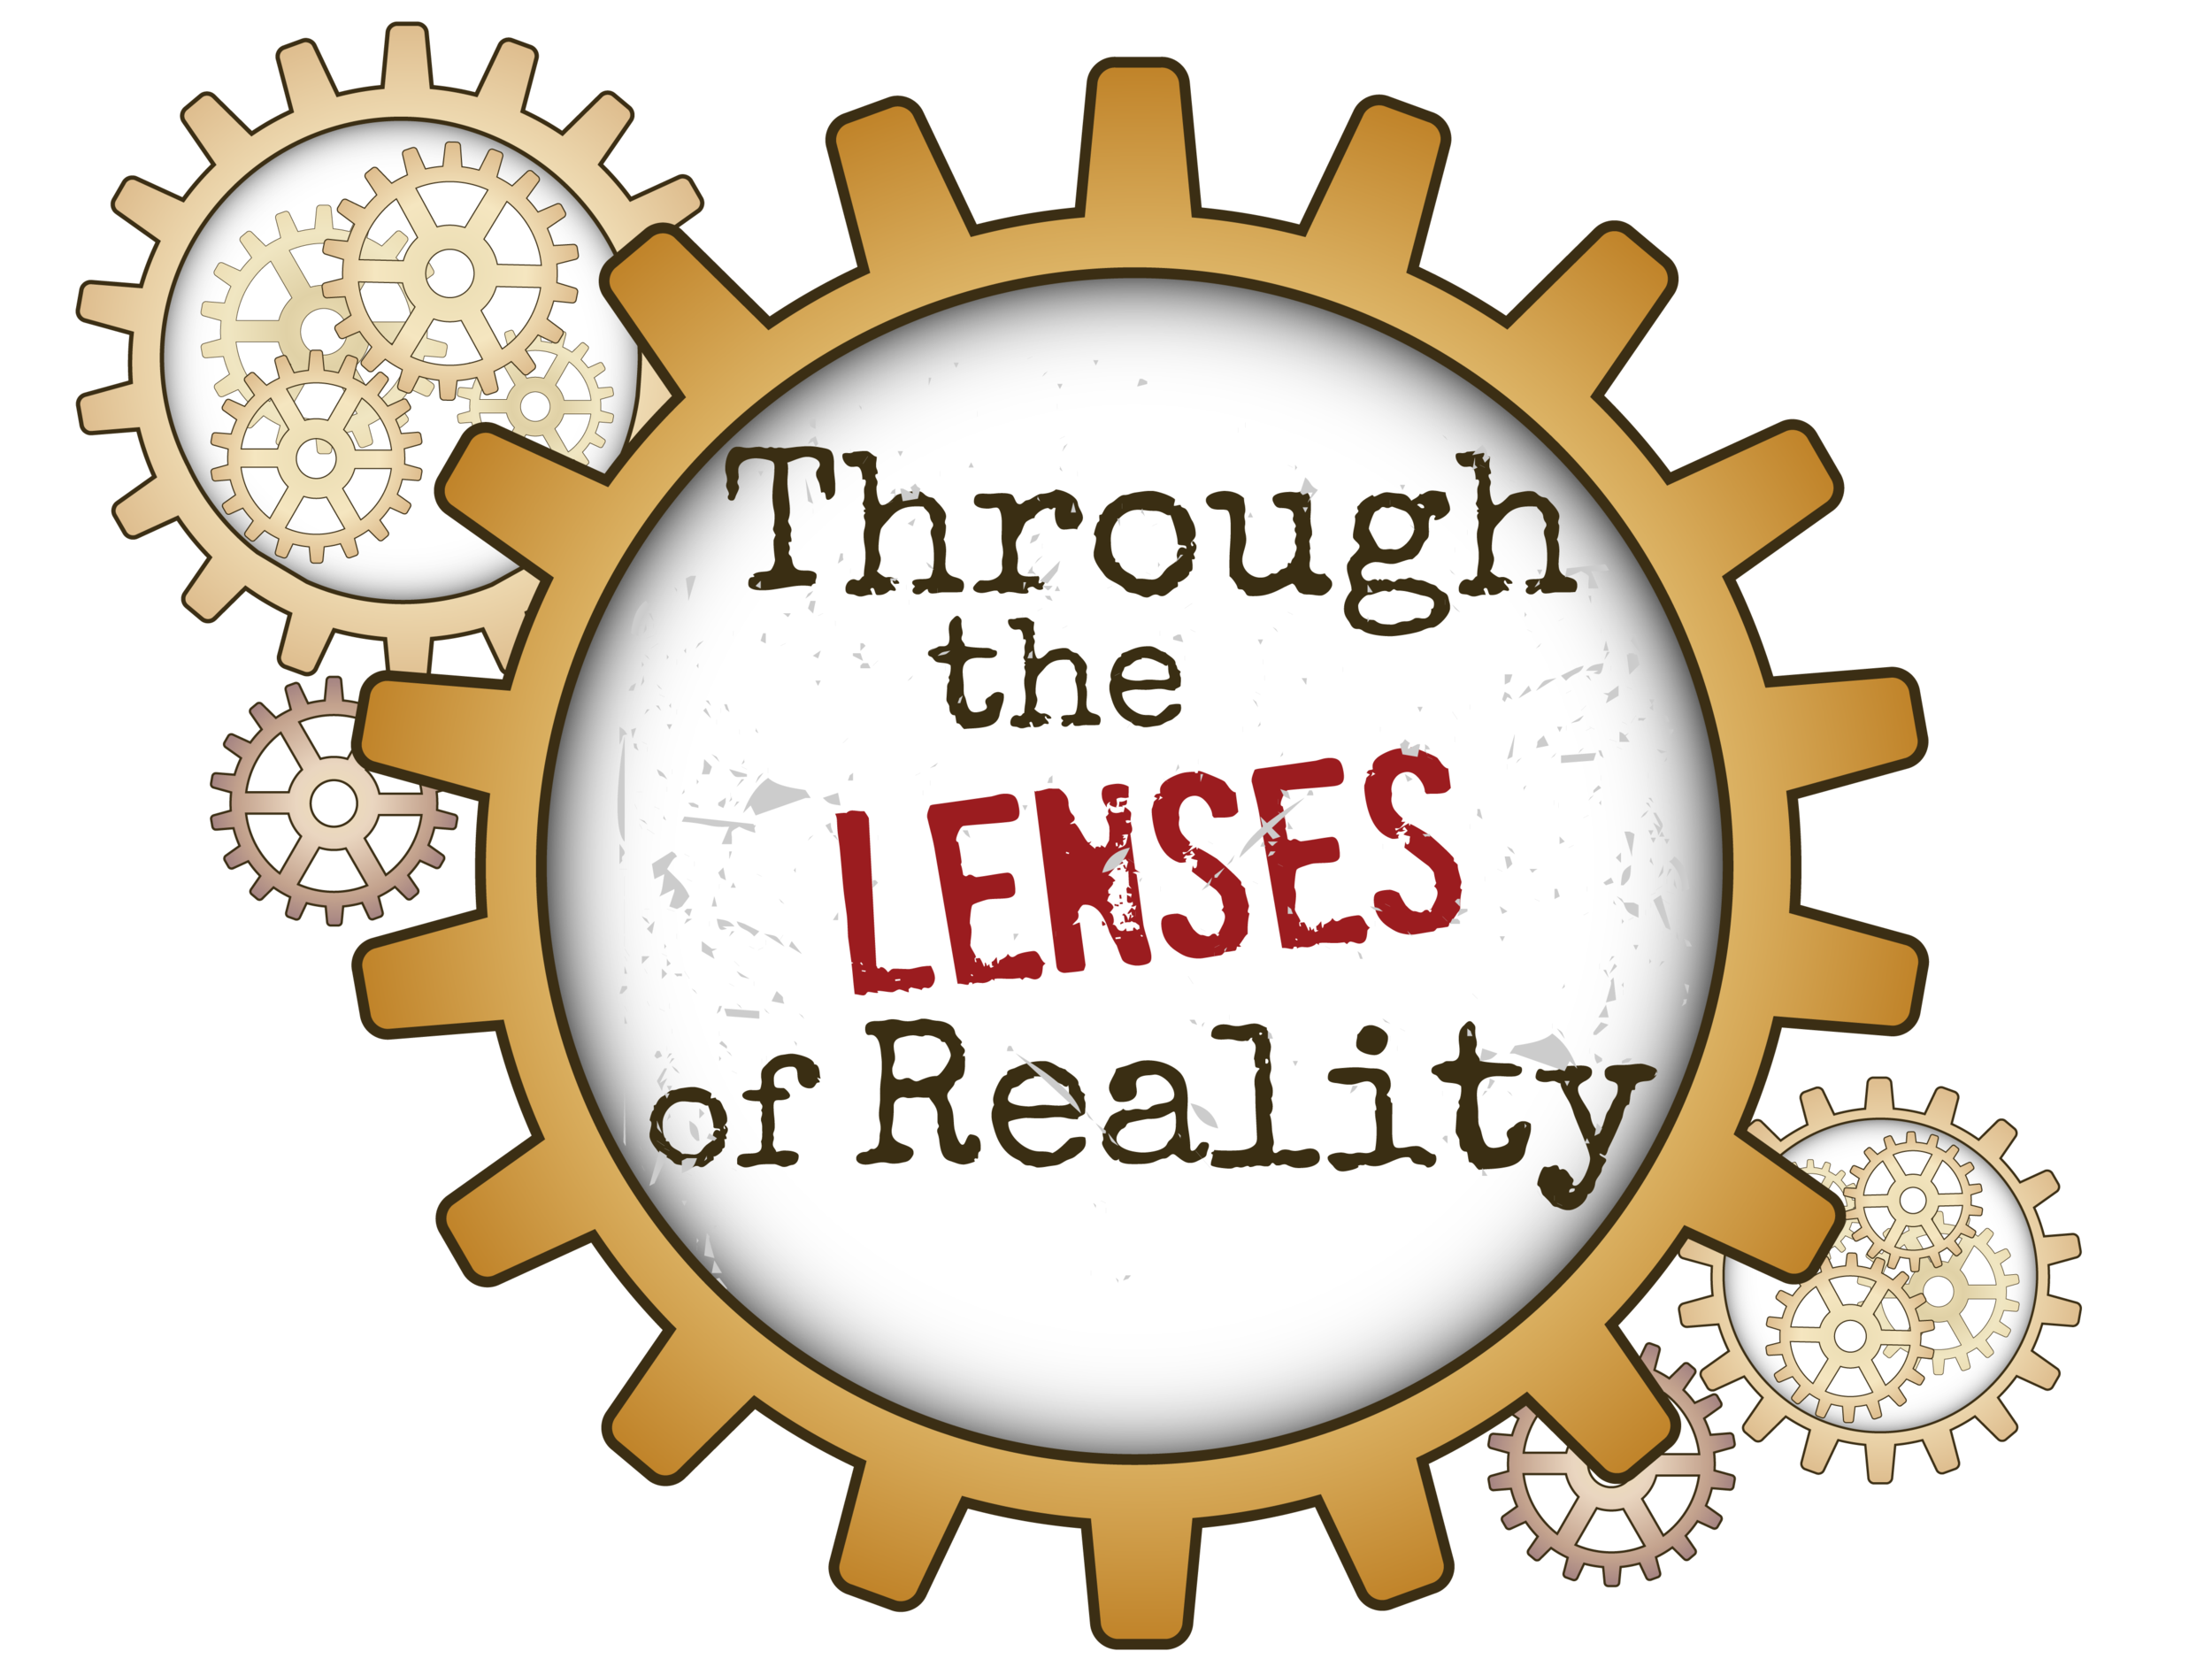 Through_the_Lenses_of_Reality.png